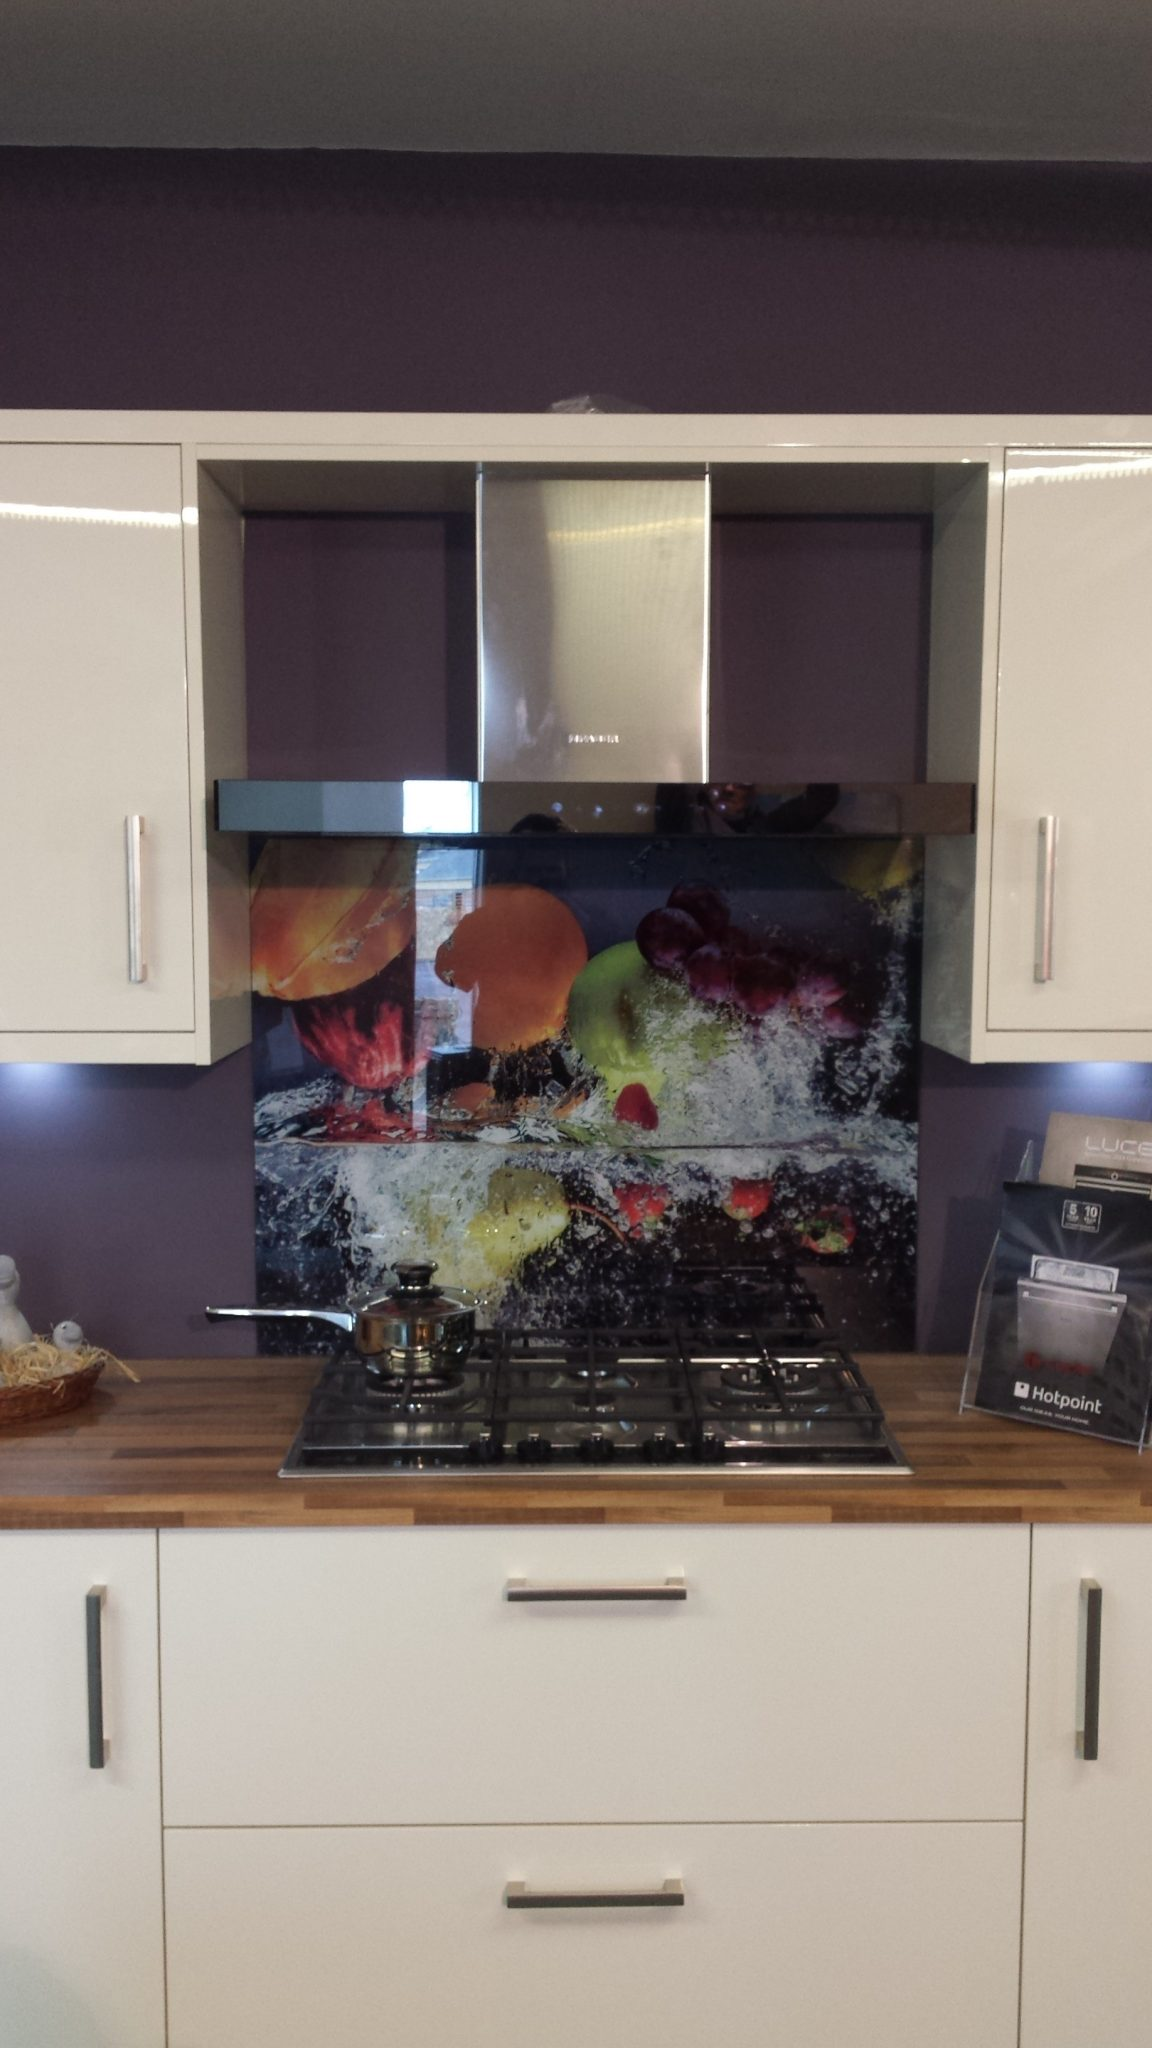 kitchen Glass Splashback with Image, colour glass, kitchen, indoors, home improvement, contemporary design, hygienic surface, heat resistant